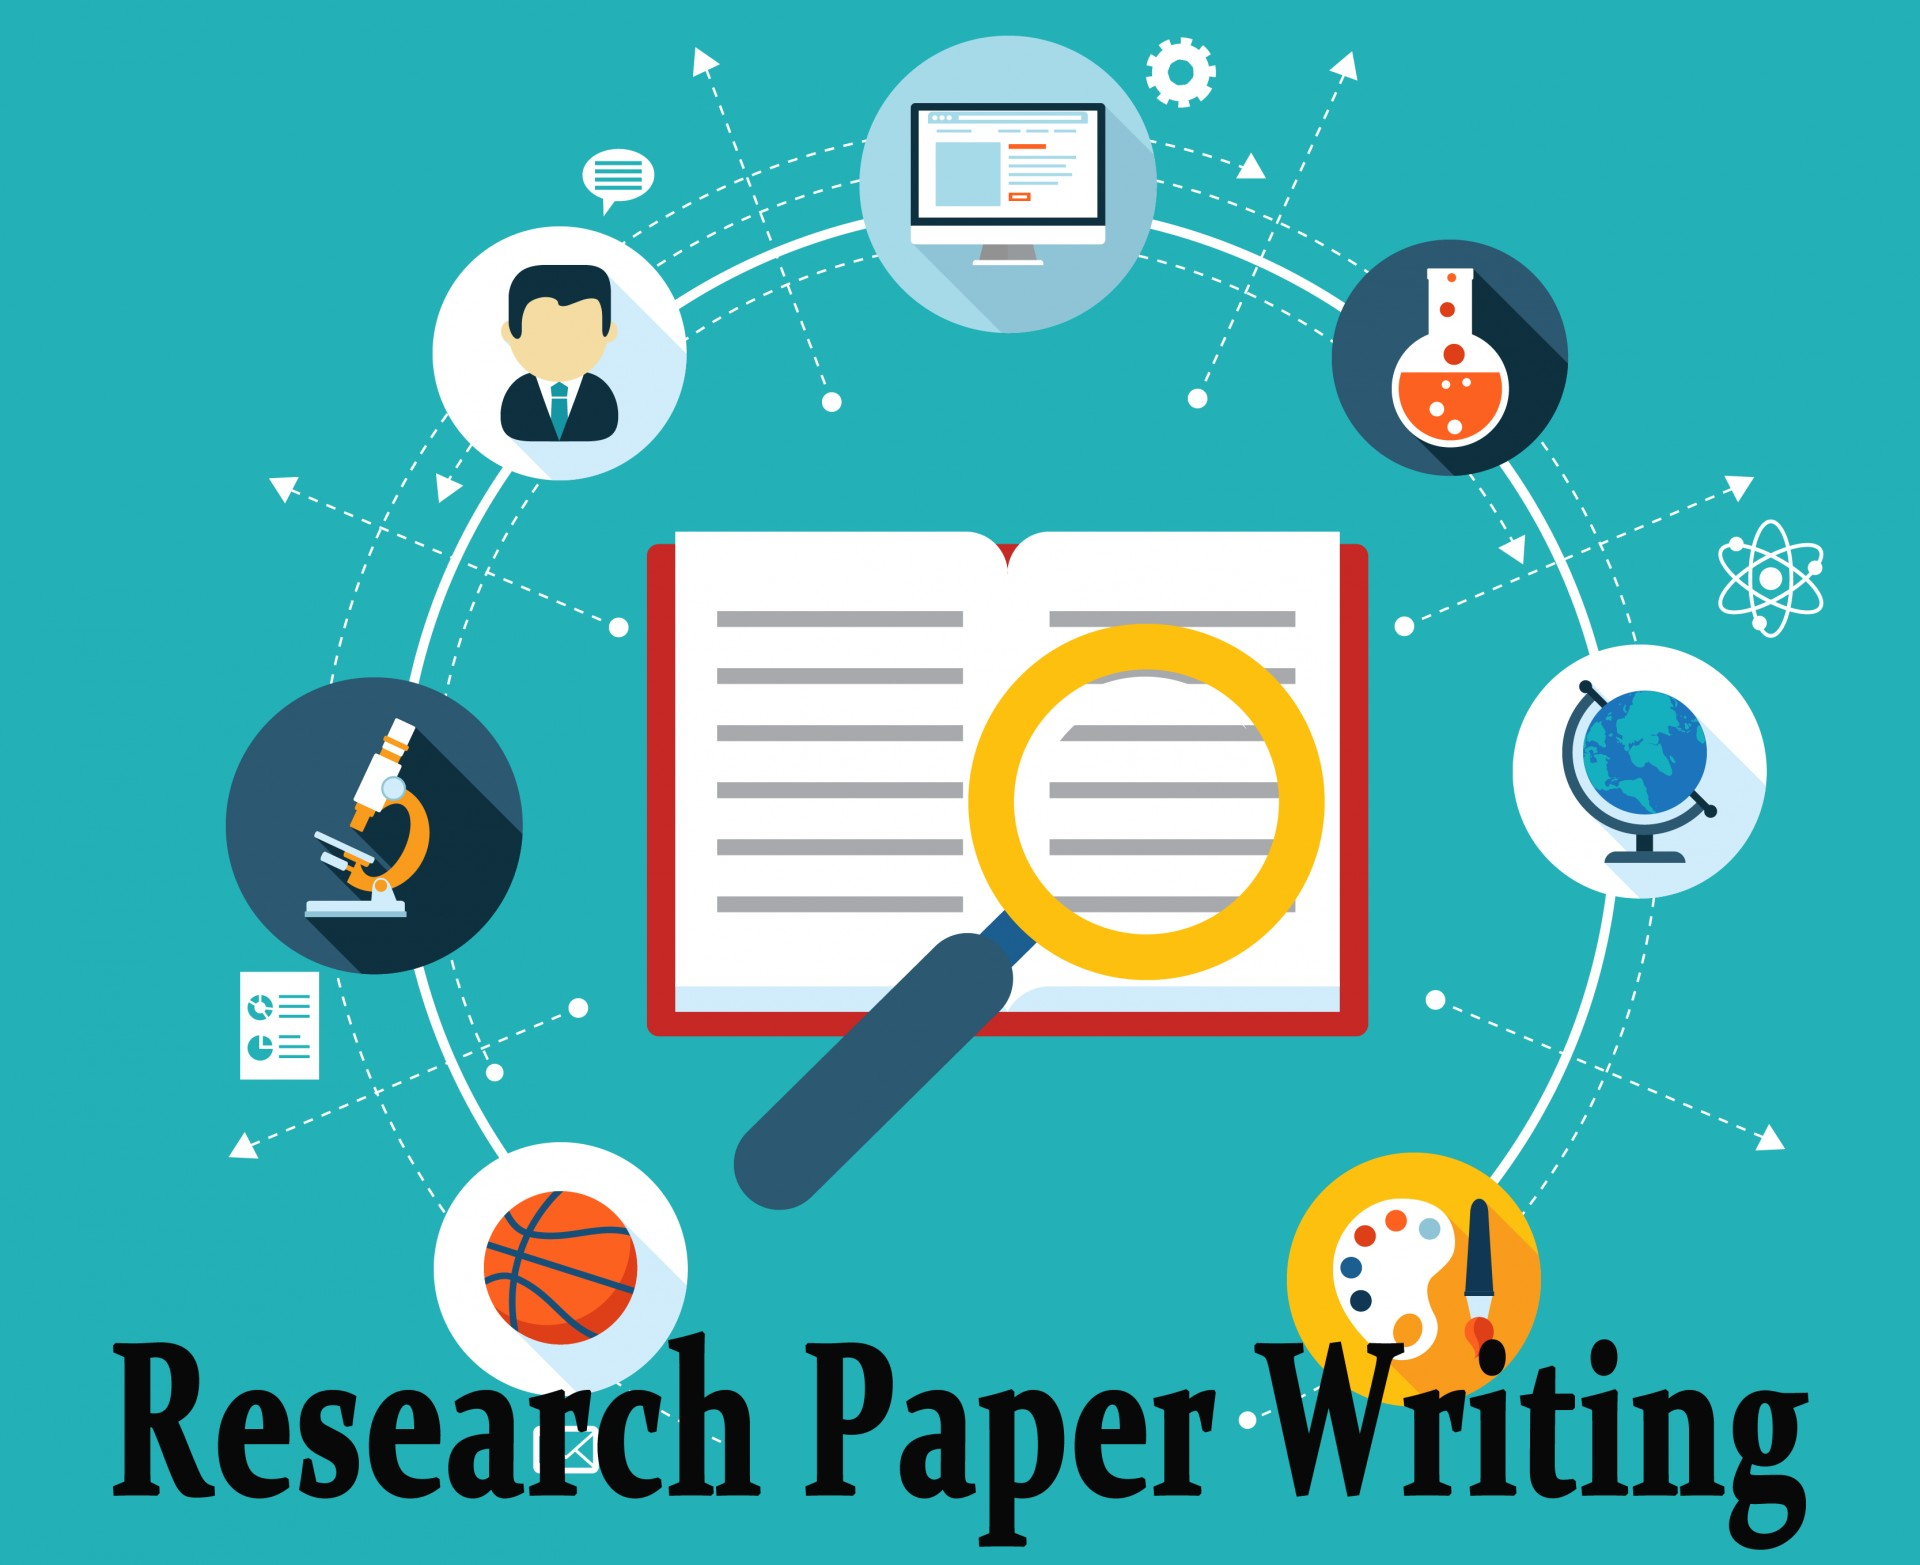 015 Research Paper 503 Effective Striking Writing Papers A Complete Guide 16th Edition Pdf 15th 1920